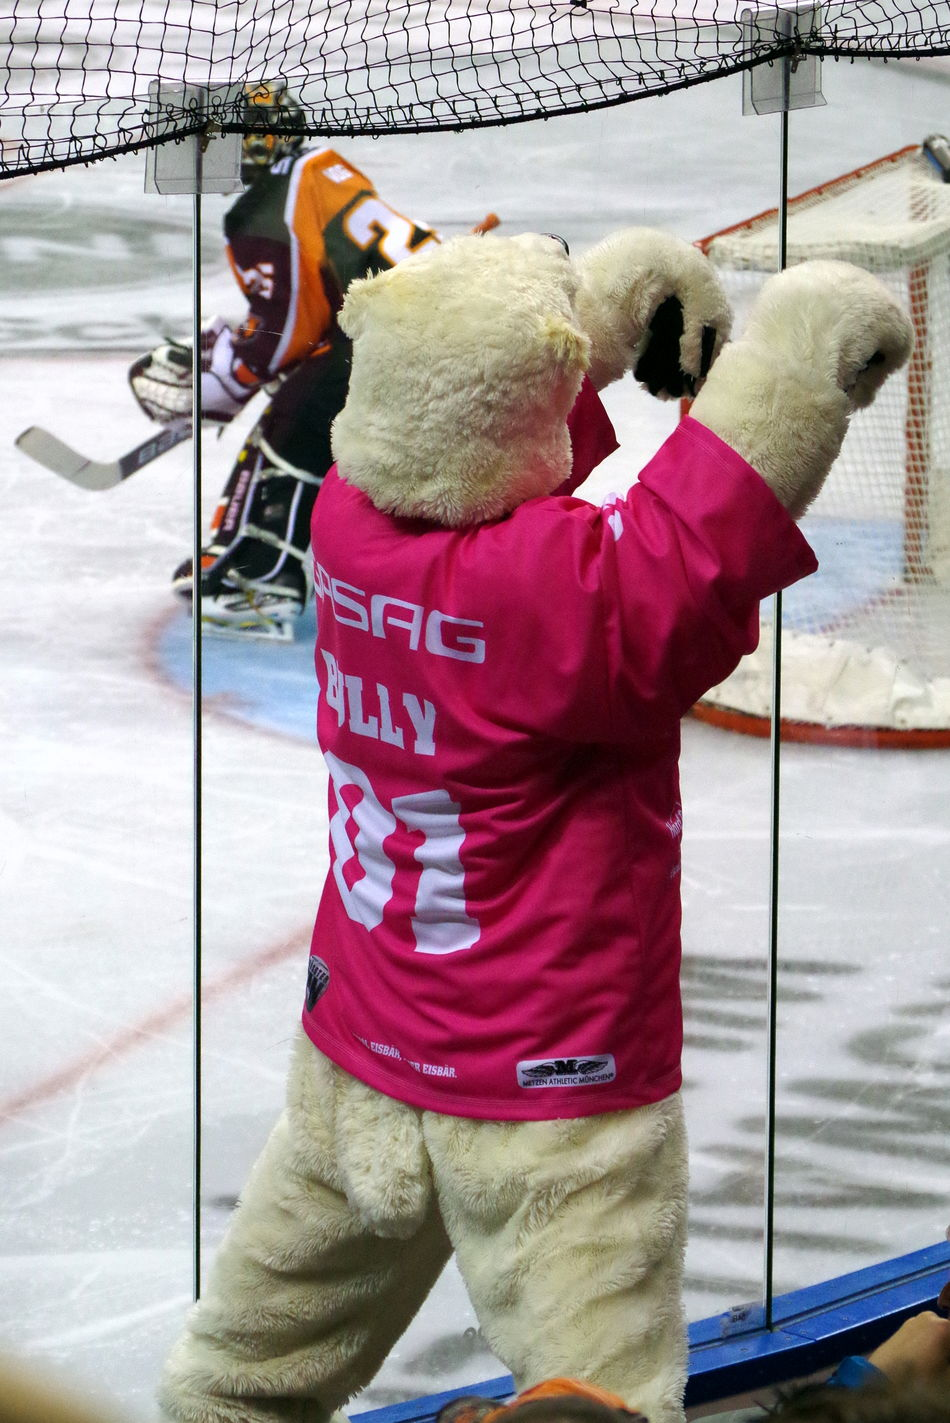 Anfeuern ... Berlin Chance Encounters Eisbär Eisbären Berlin Eishockey Ice Hockey Icebear School Of Photography Sport Standing Stehen Millennial Pink